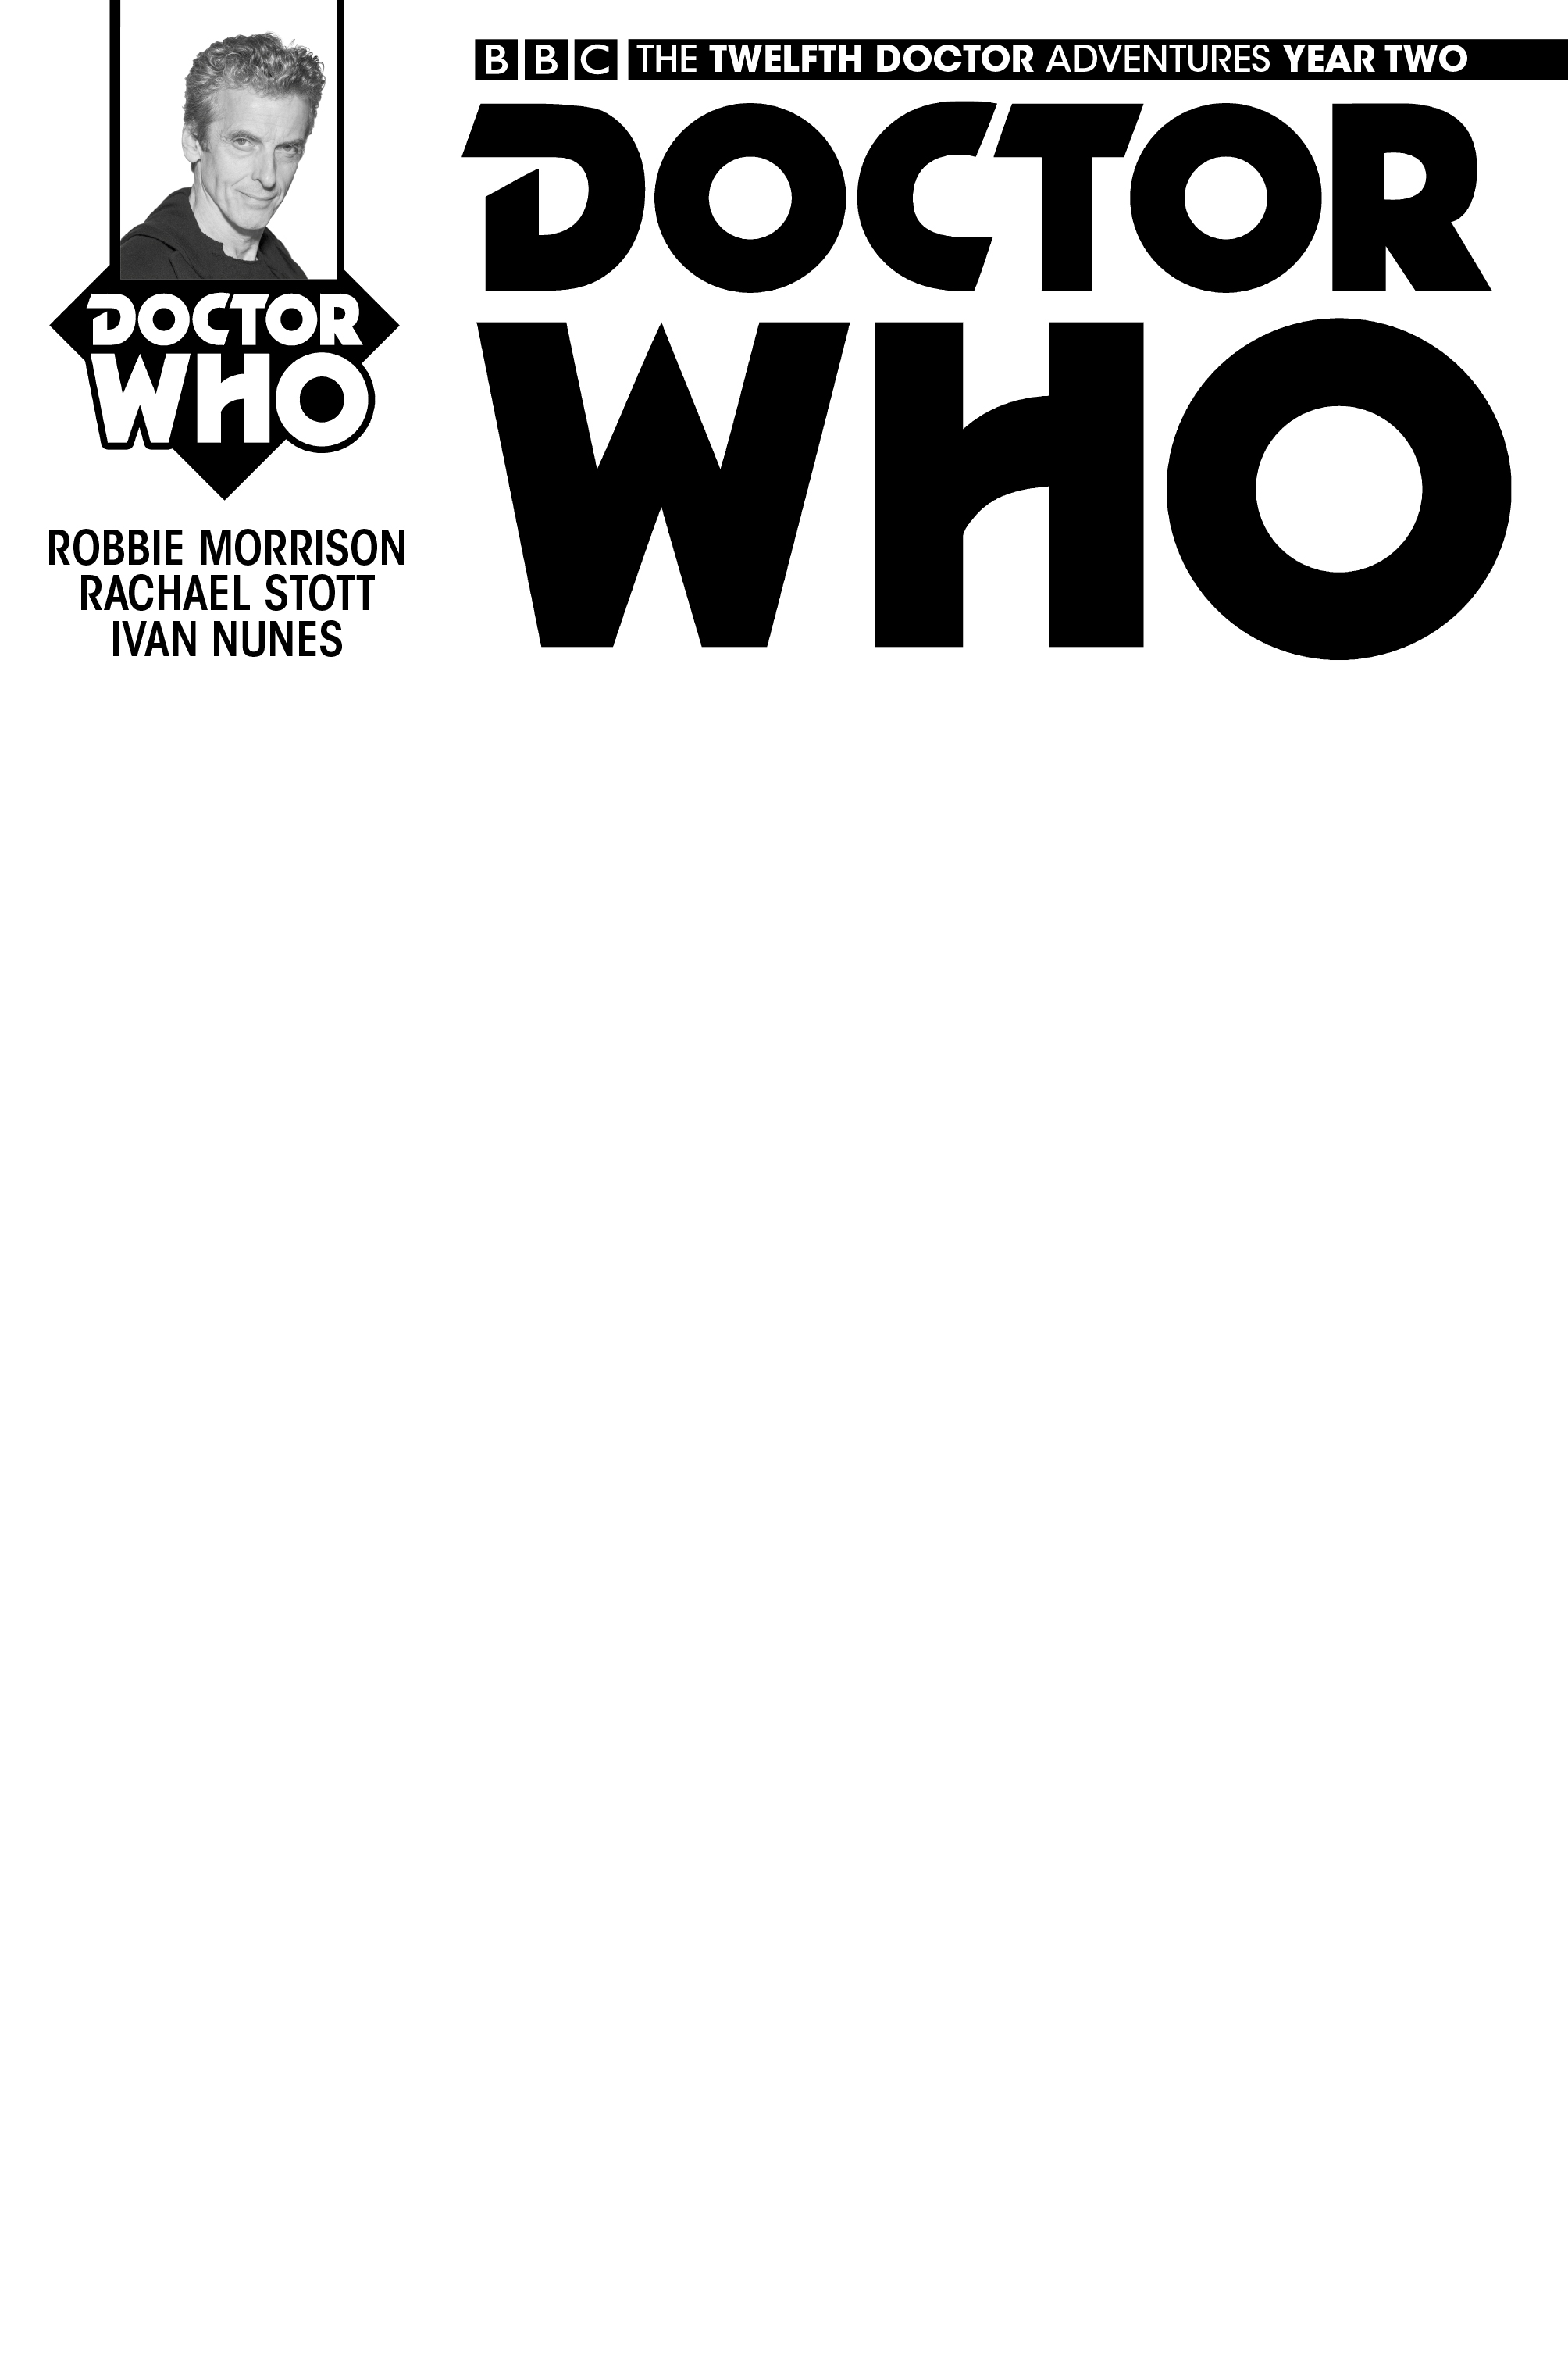 Doctor Who: The Twelfth Doctor - Year Two #1 Cover